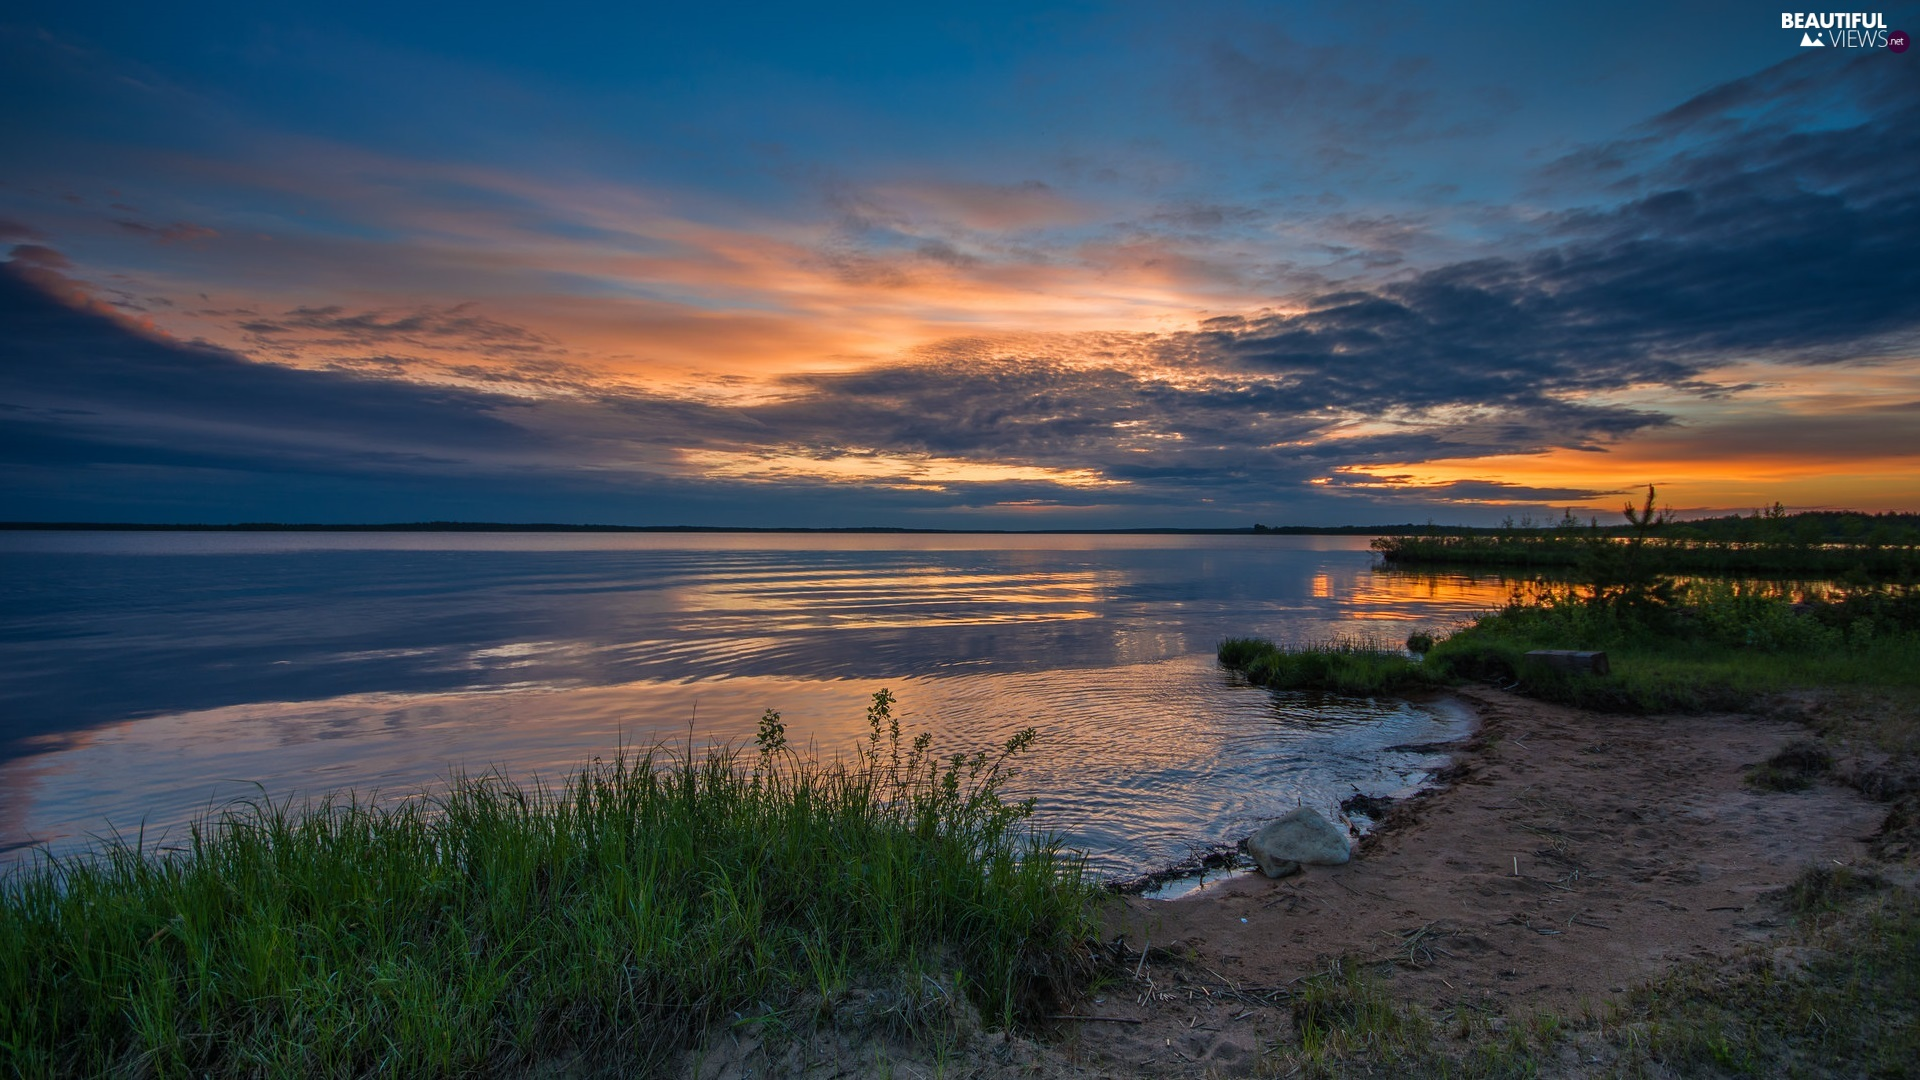 coast, grass, Great Sunsets, clouds, lake